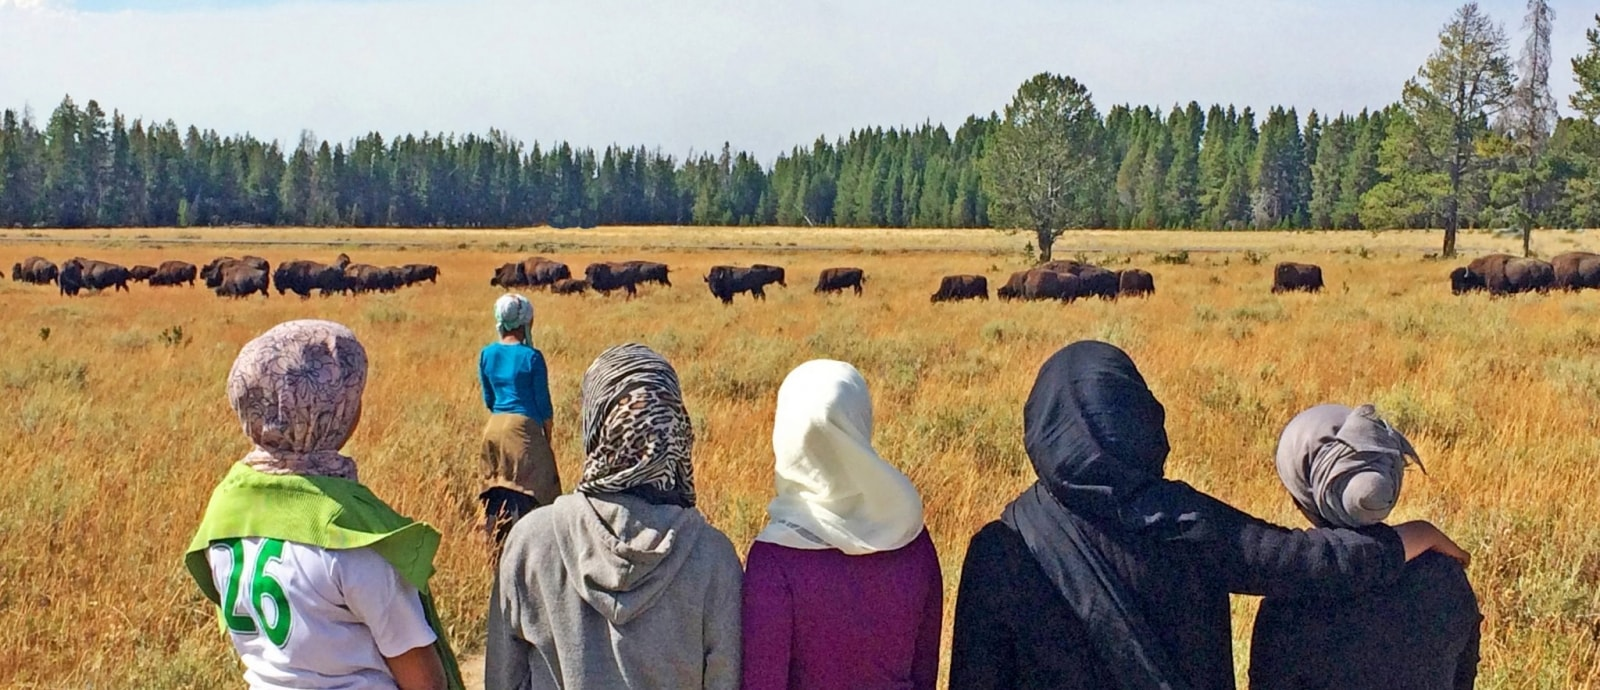 Young women view buffalo in Yellowstone